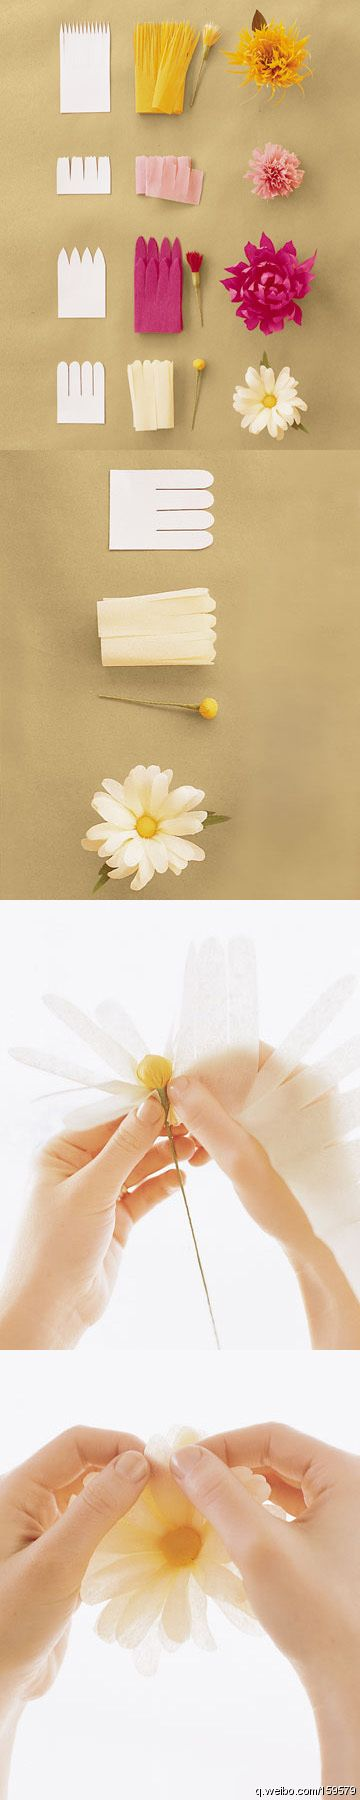 shows the different  cuts of papers for the different flowers                                                                                                                                                                                 More